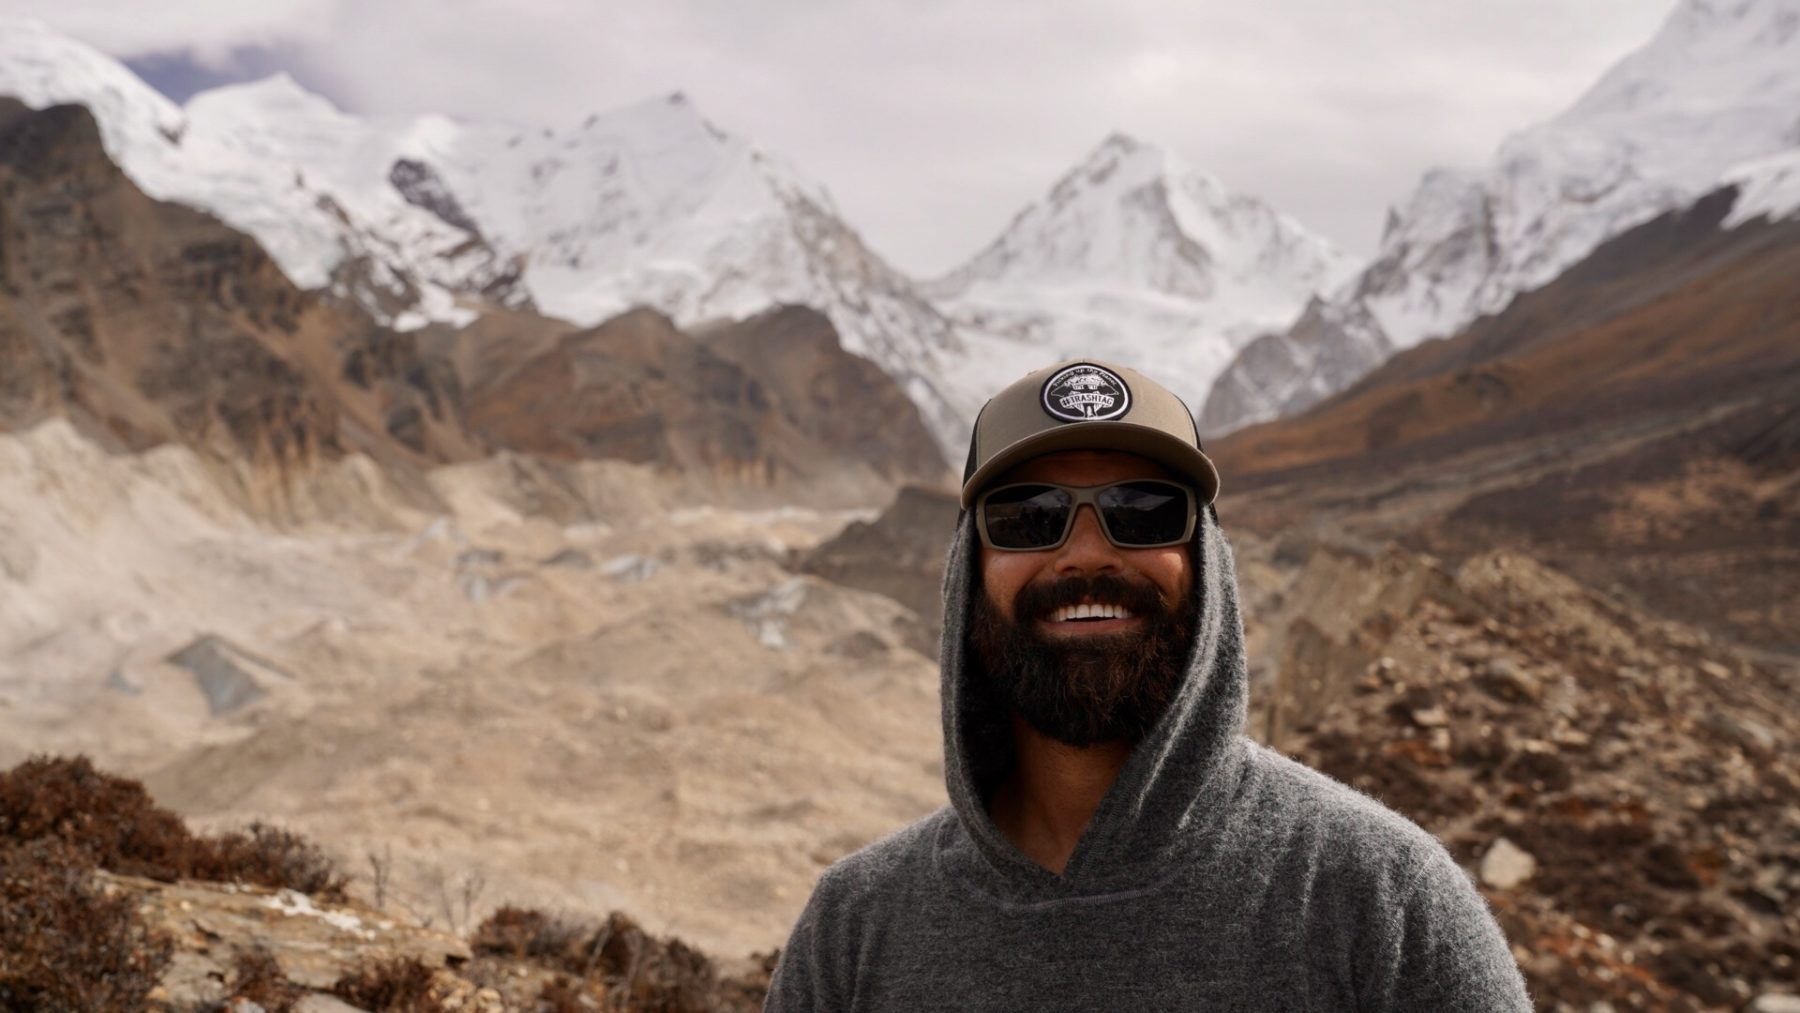 Steven in Himalayas